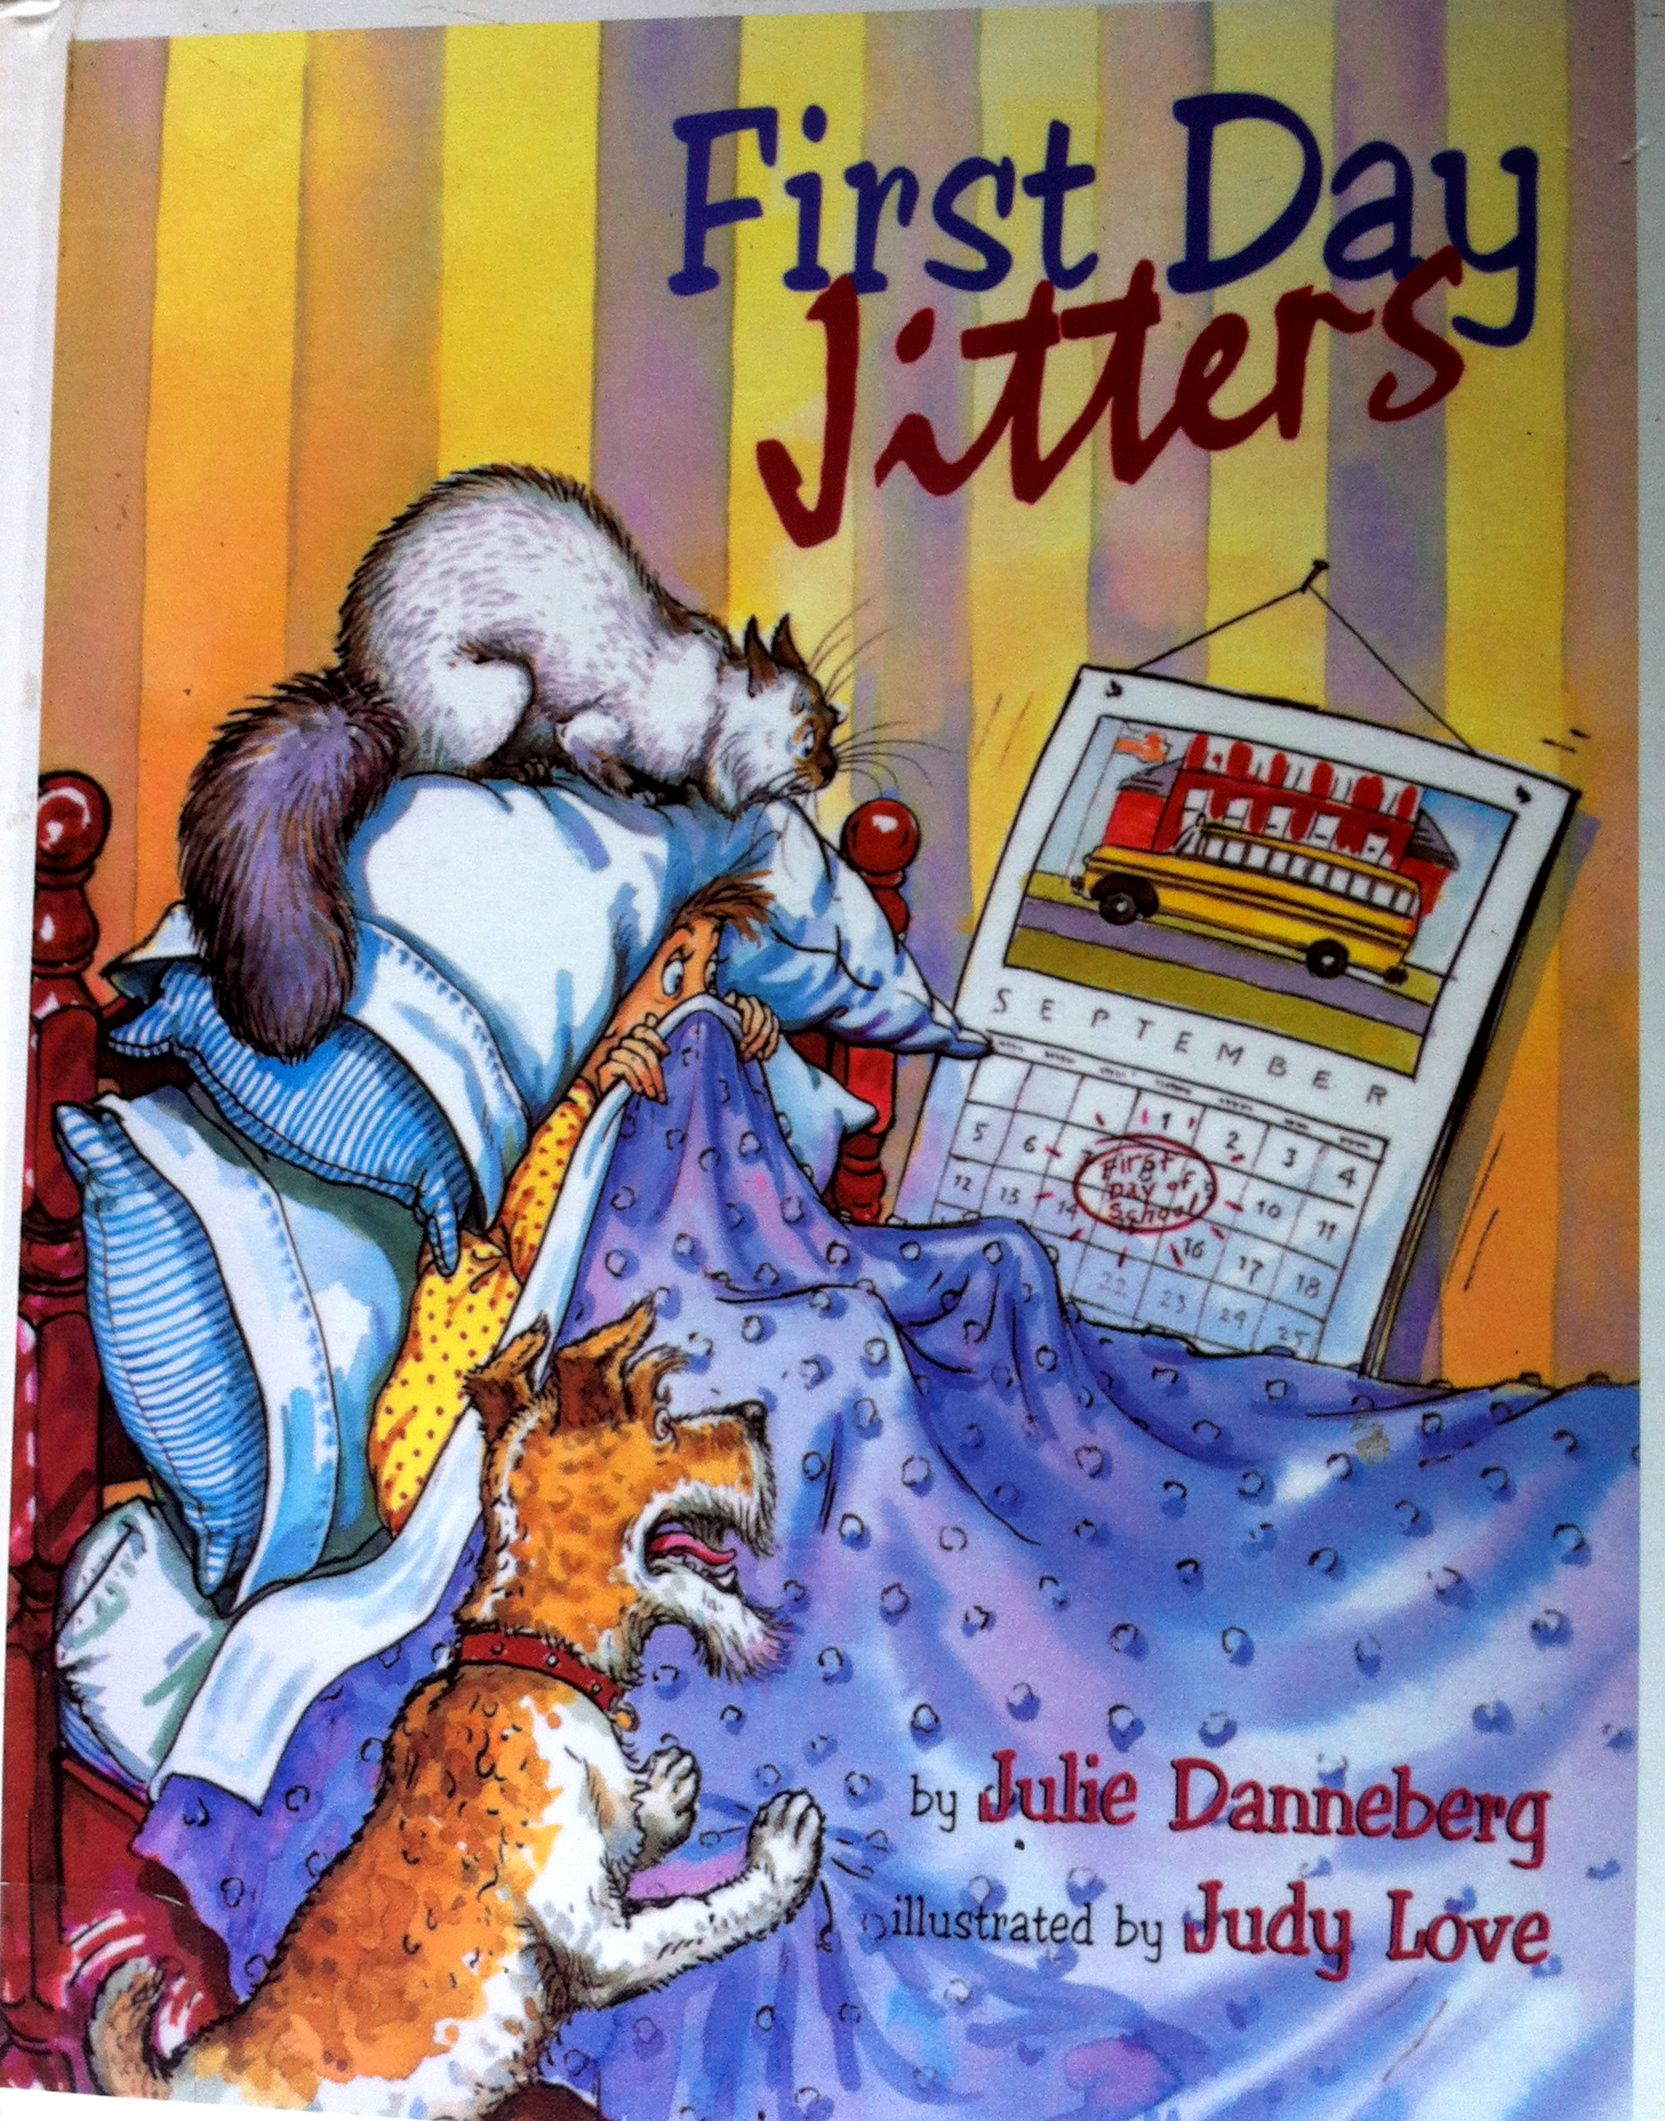 First Day Jitters Book Review